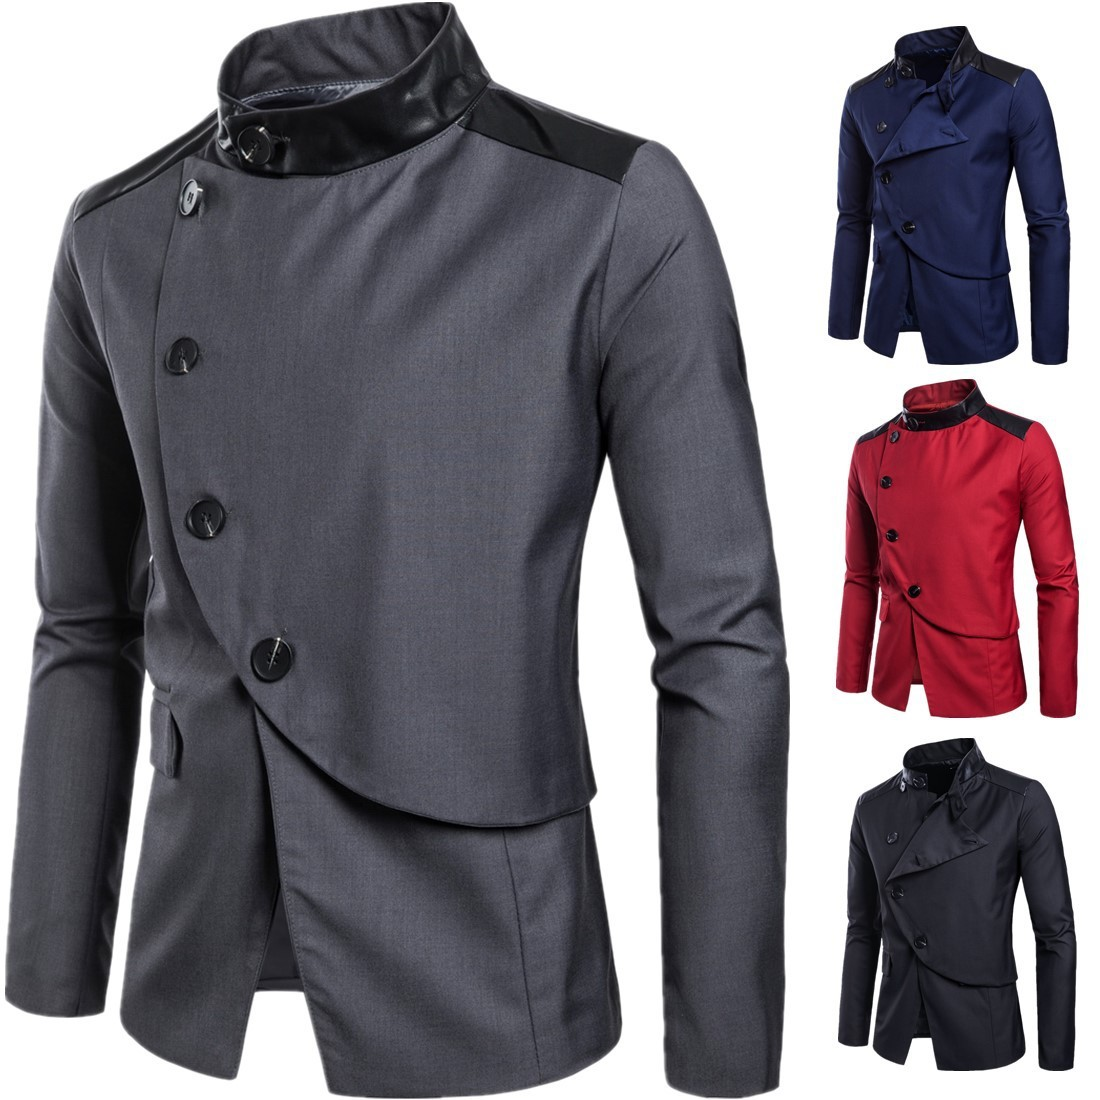 2019 Spring New Men's Suits Jacket , Solid Color Blazers Men / England Style Wind Double Breasted Suit Men's Jackets